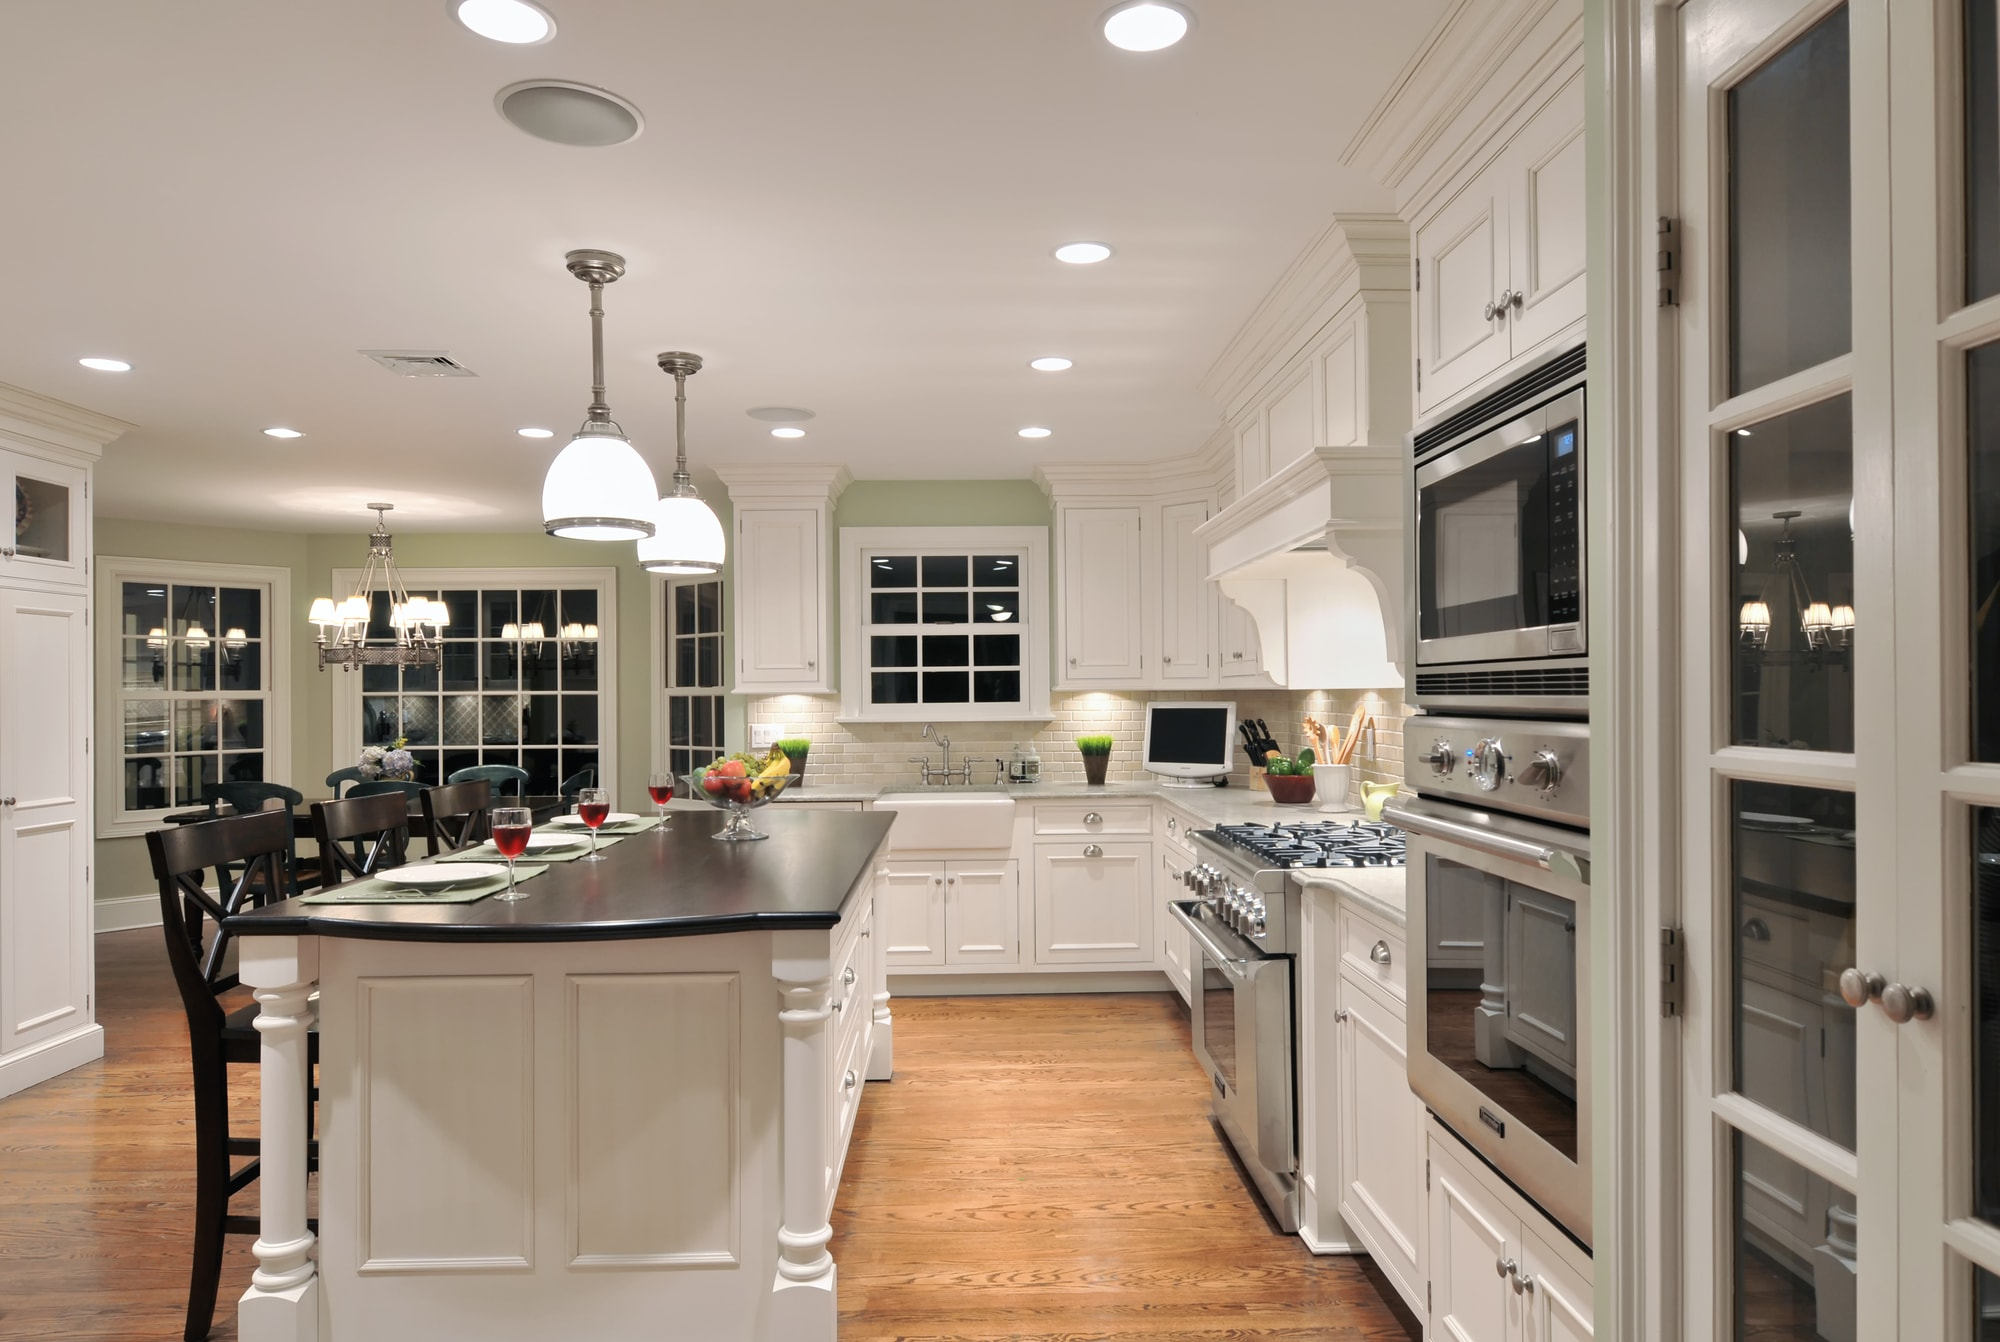 Traditional style kitchen with bright color scheme